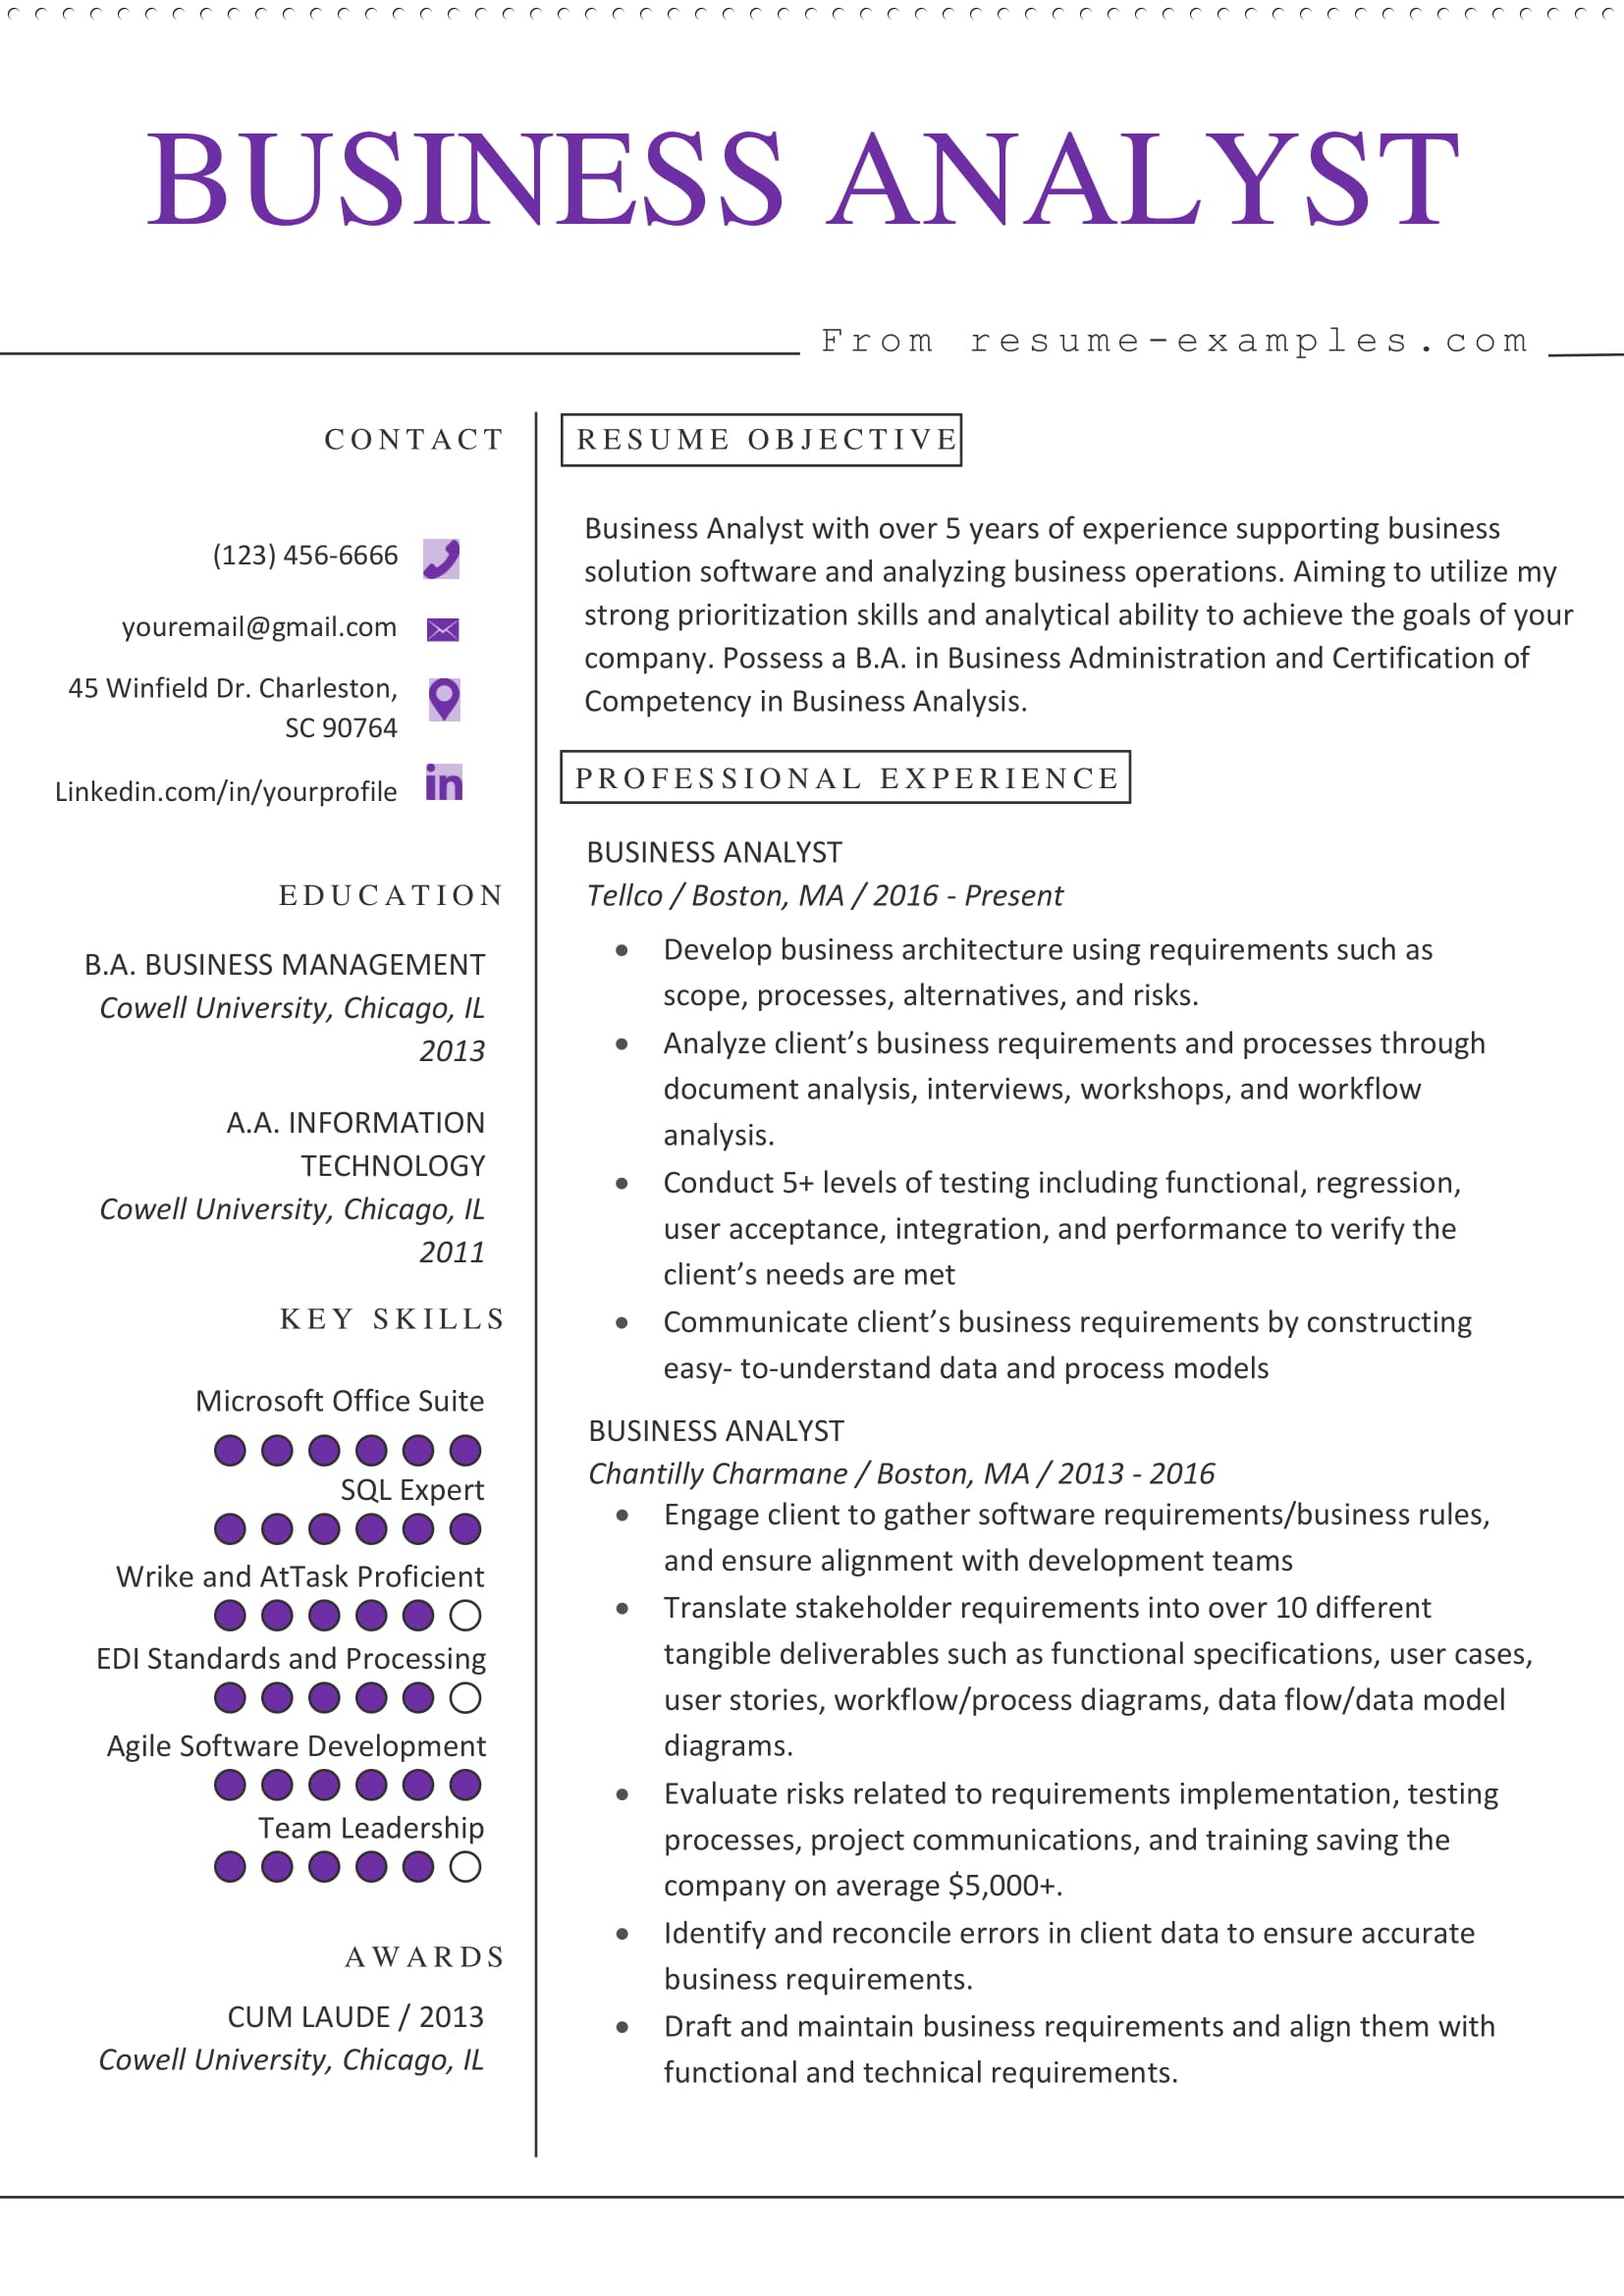 business analyst resume example microsoft word format template construction field Resume Business Analyst Resume Template